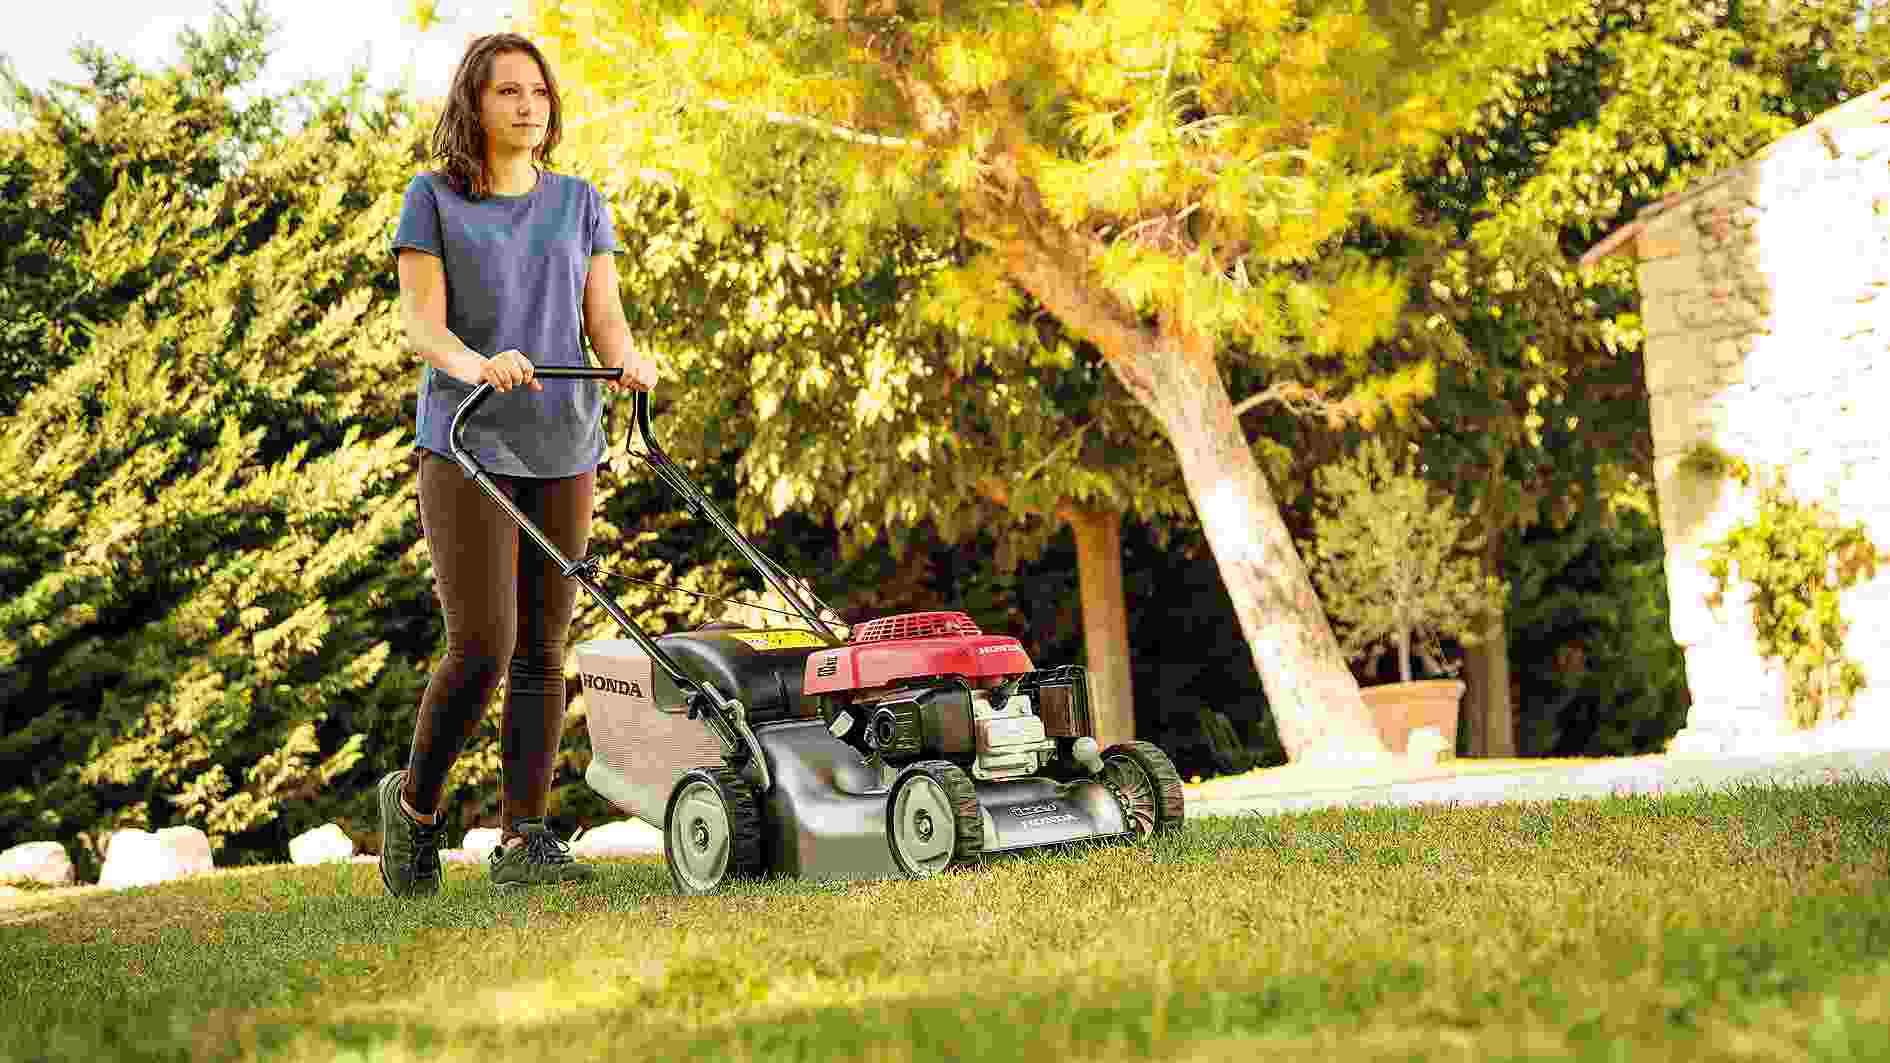 Top 7 Maintenance Tips To keep Lawn Mower in Good Condition